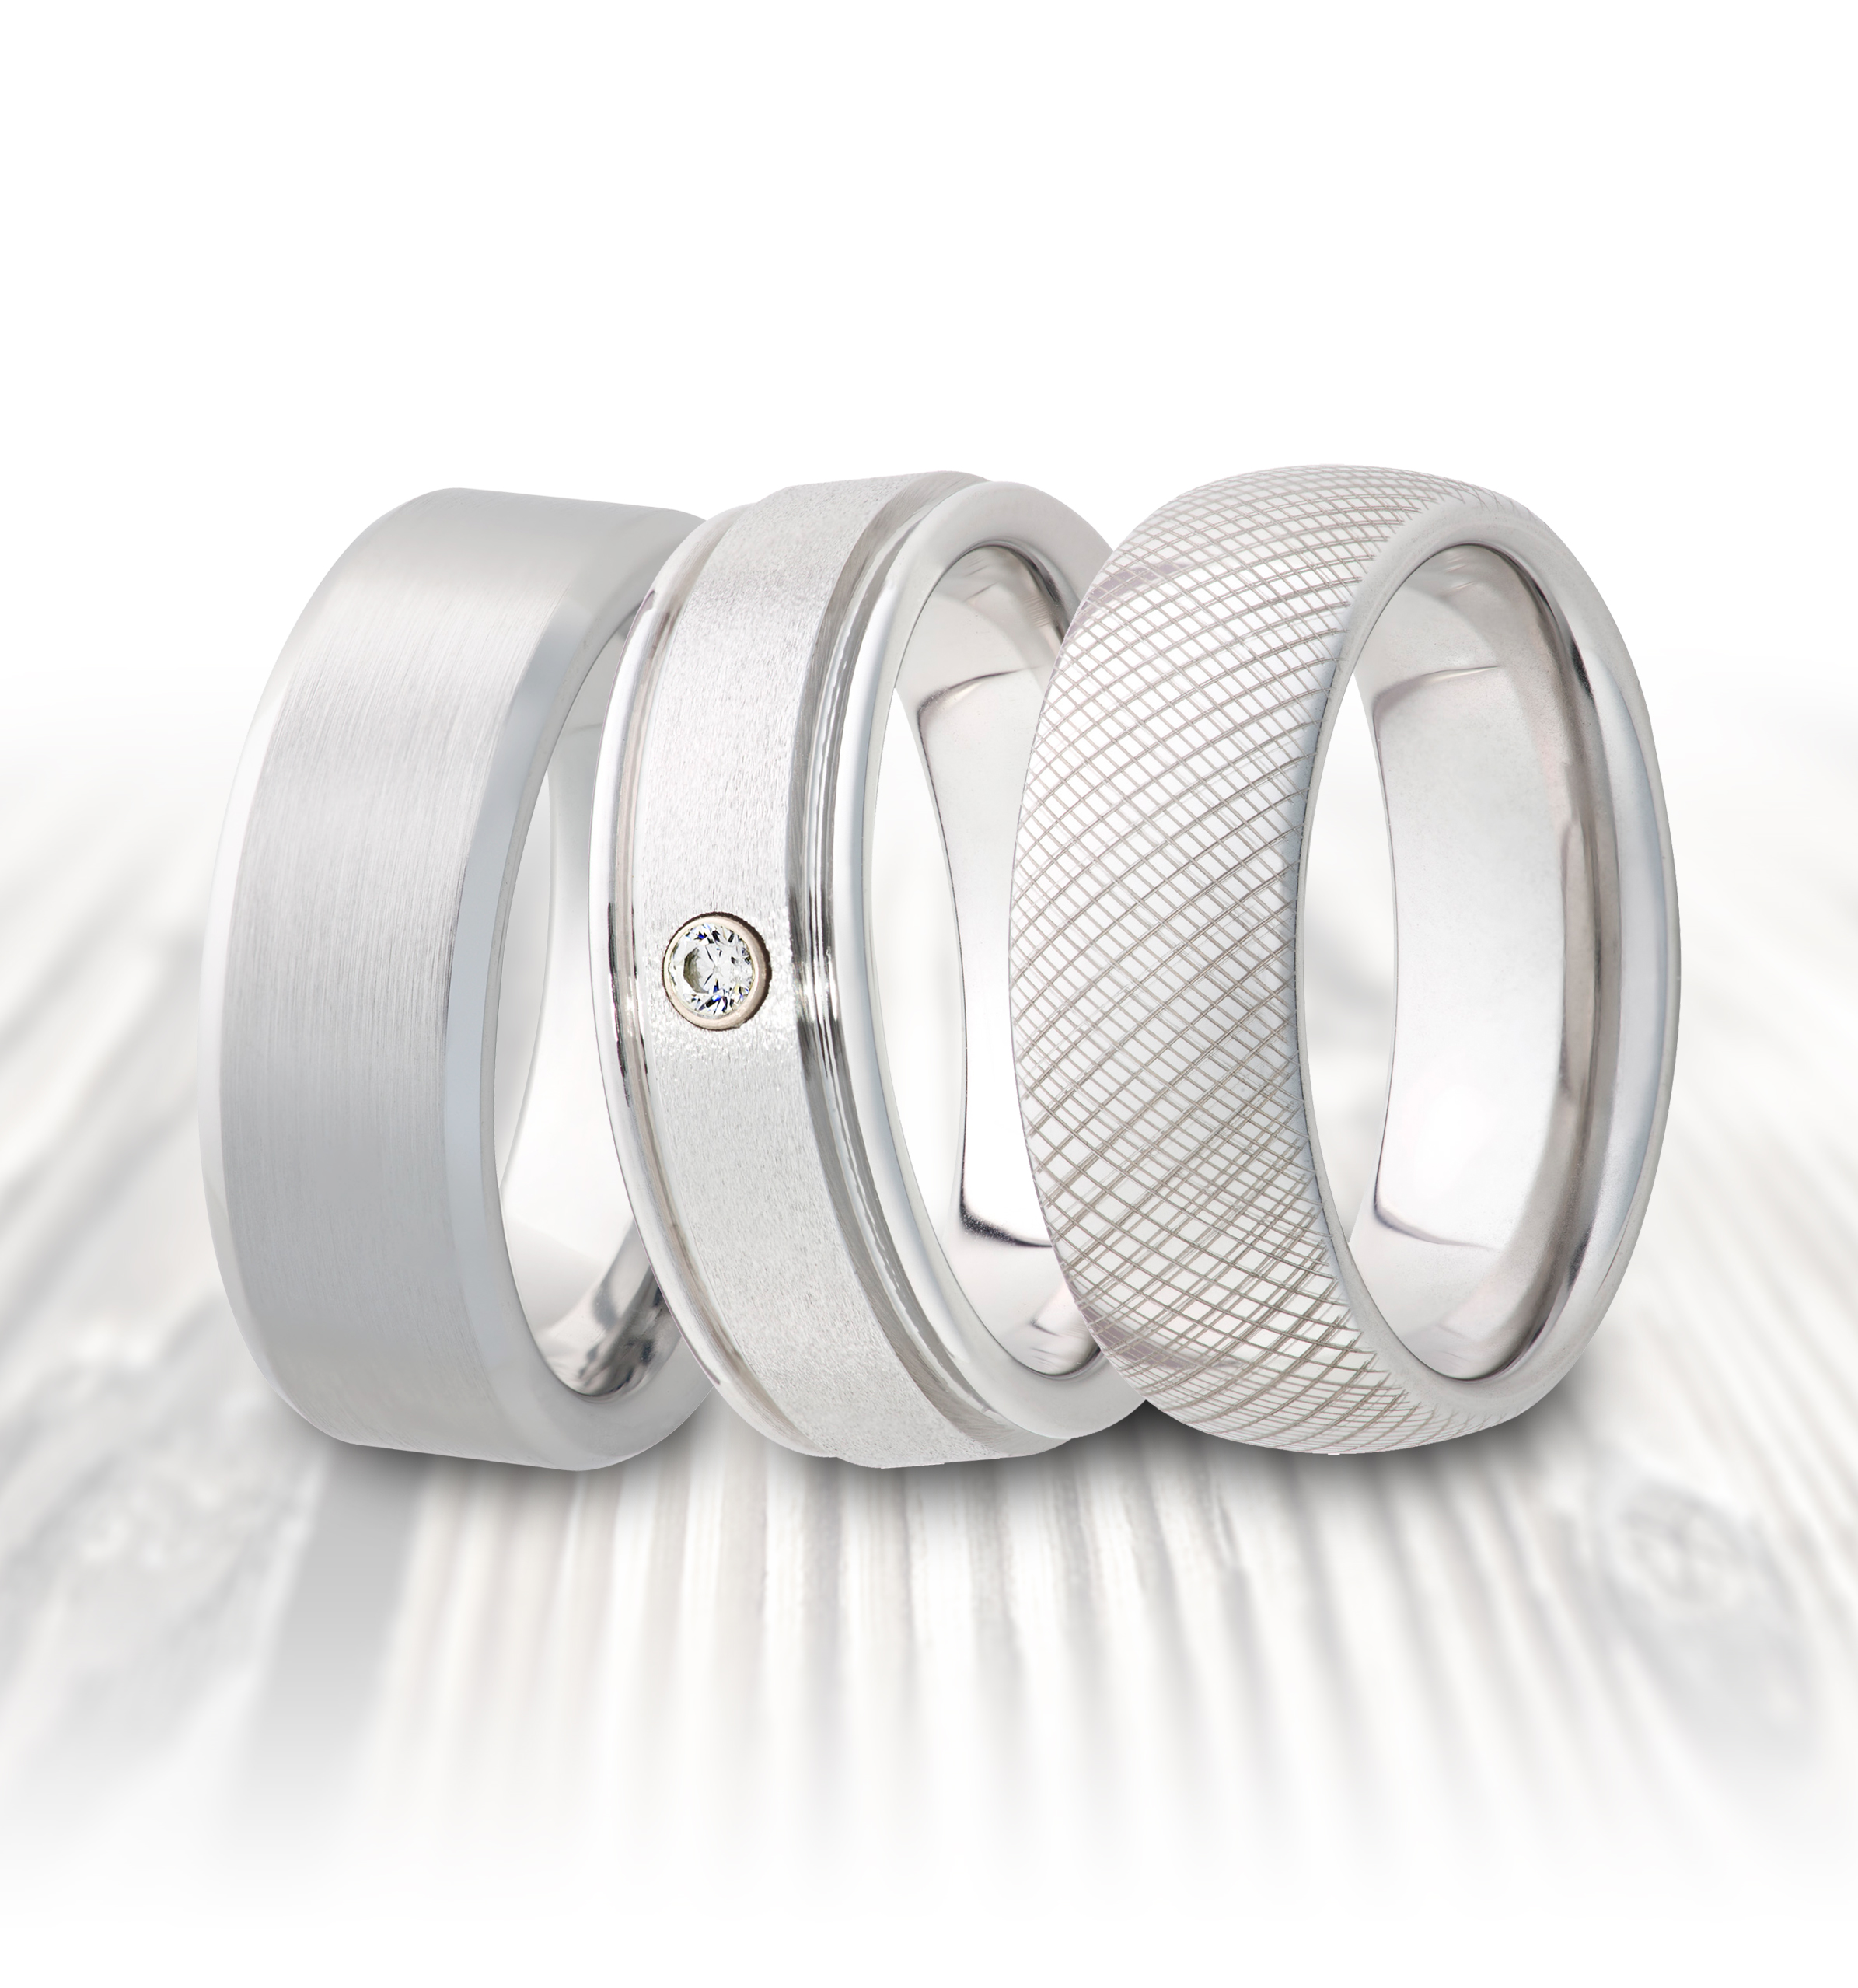 rings white find and thibaudeau plt pin more or this platinum by claude mpr style different on